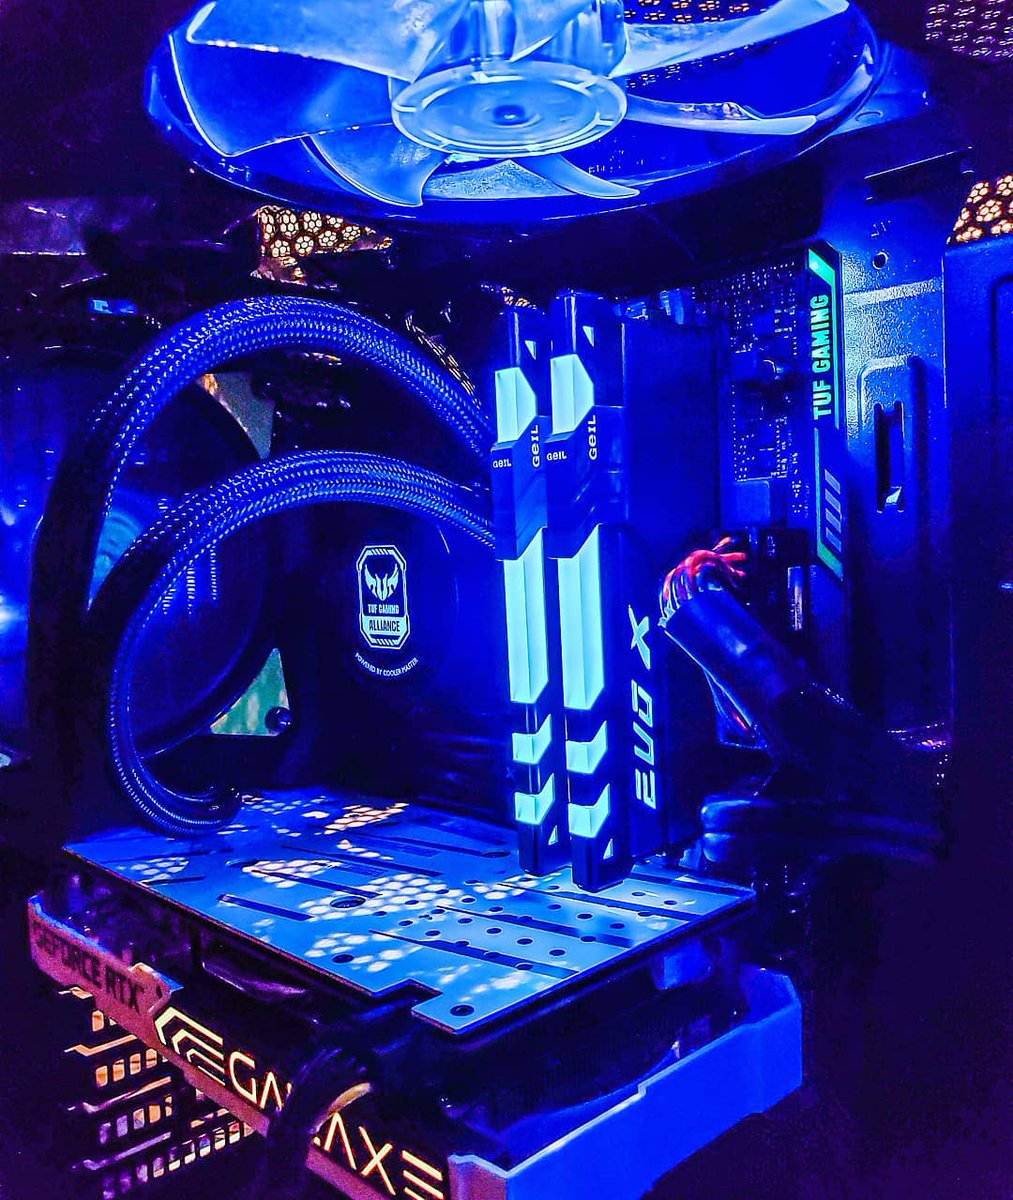 Try some different color schemes! It's really eye-catching with the amazing blue lights from EVO X II.  by: @rainerikuma  #YesGeILMemoryPics #GeILMemory #PCComponents #gaminghub #extremepc #pcmodding #dreampc #gamingcomputer #custompc #custompcbuild #pcaddictspic.twitter.com/R9o9Z5TY2n